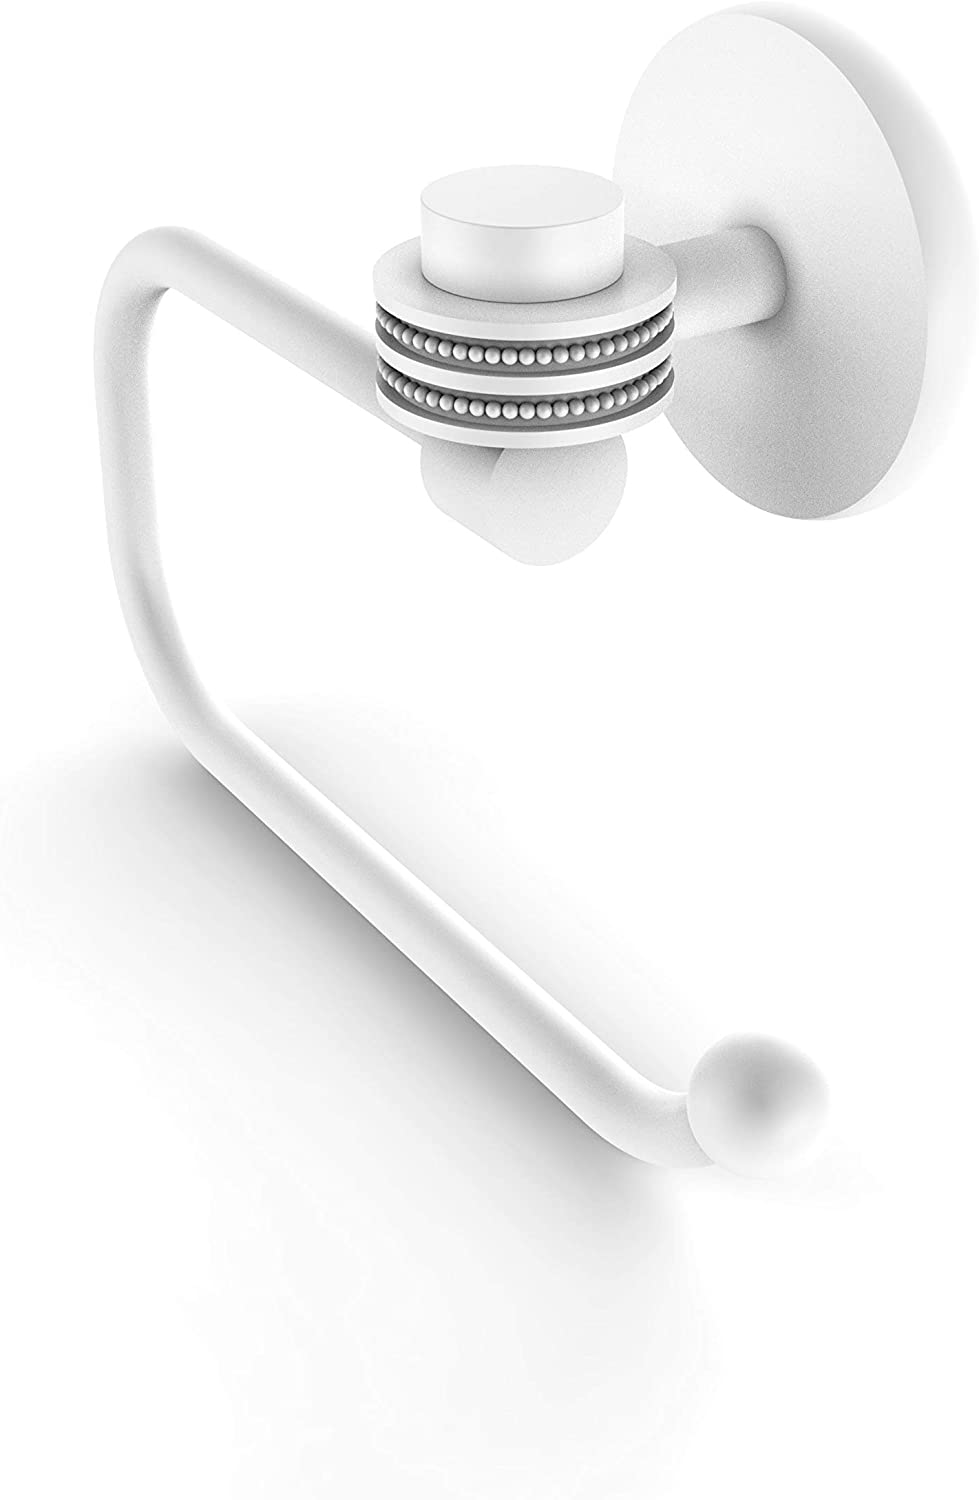 Allied Brass 7124ED Satellite Orbit One Collection Euro Style Tissue Dotted Accents Toilet Paper Holder, Matte White